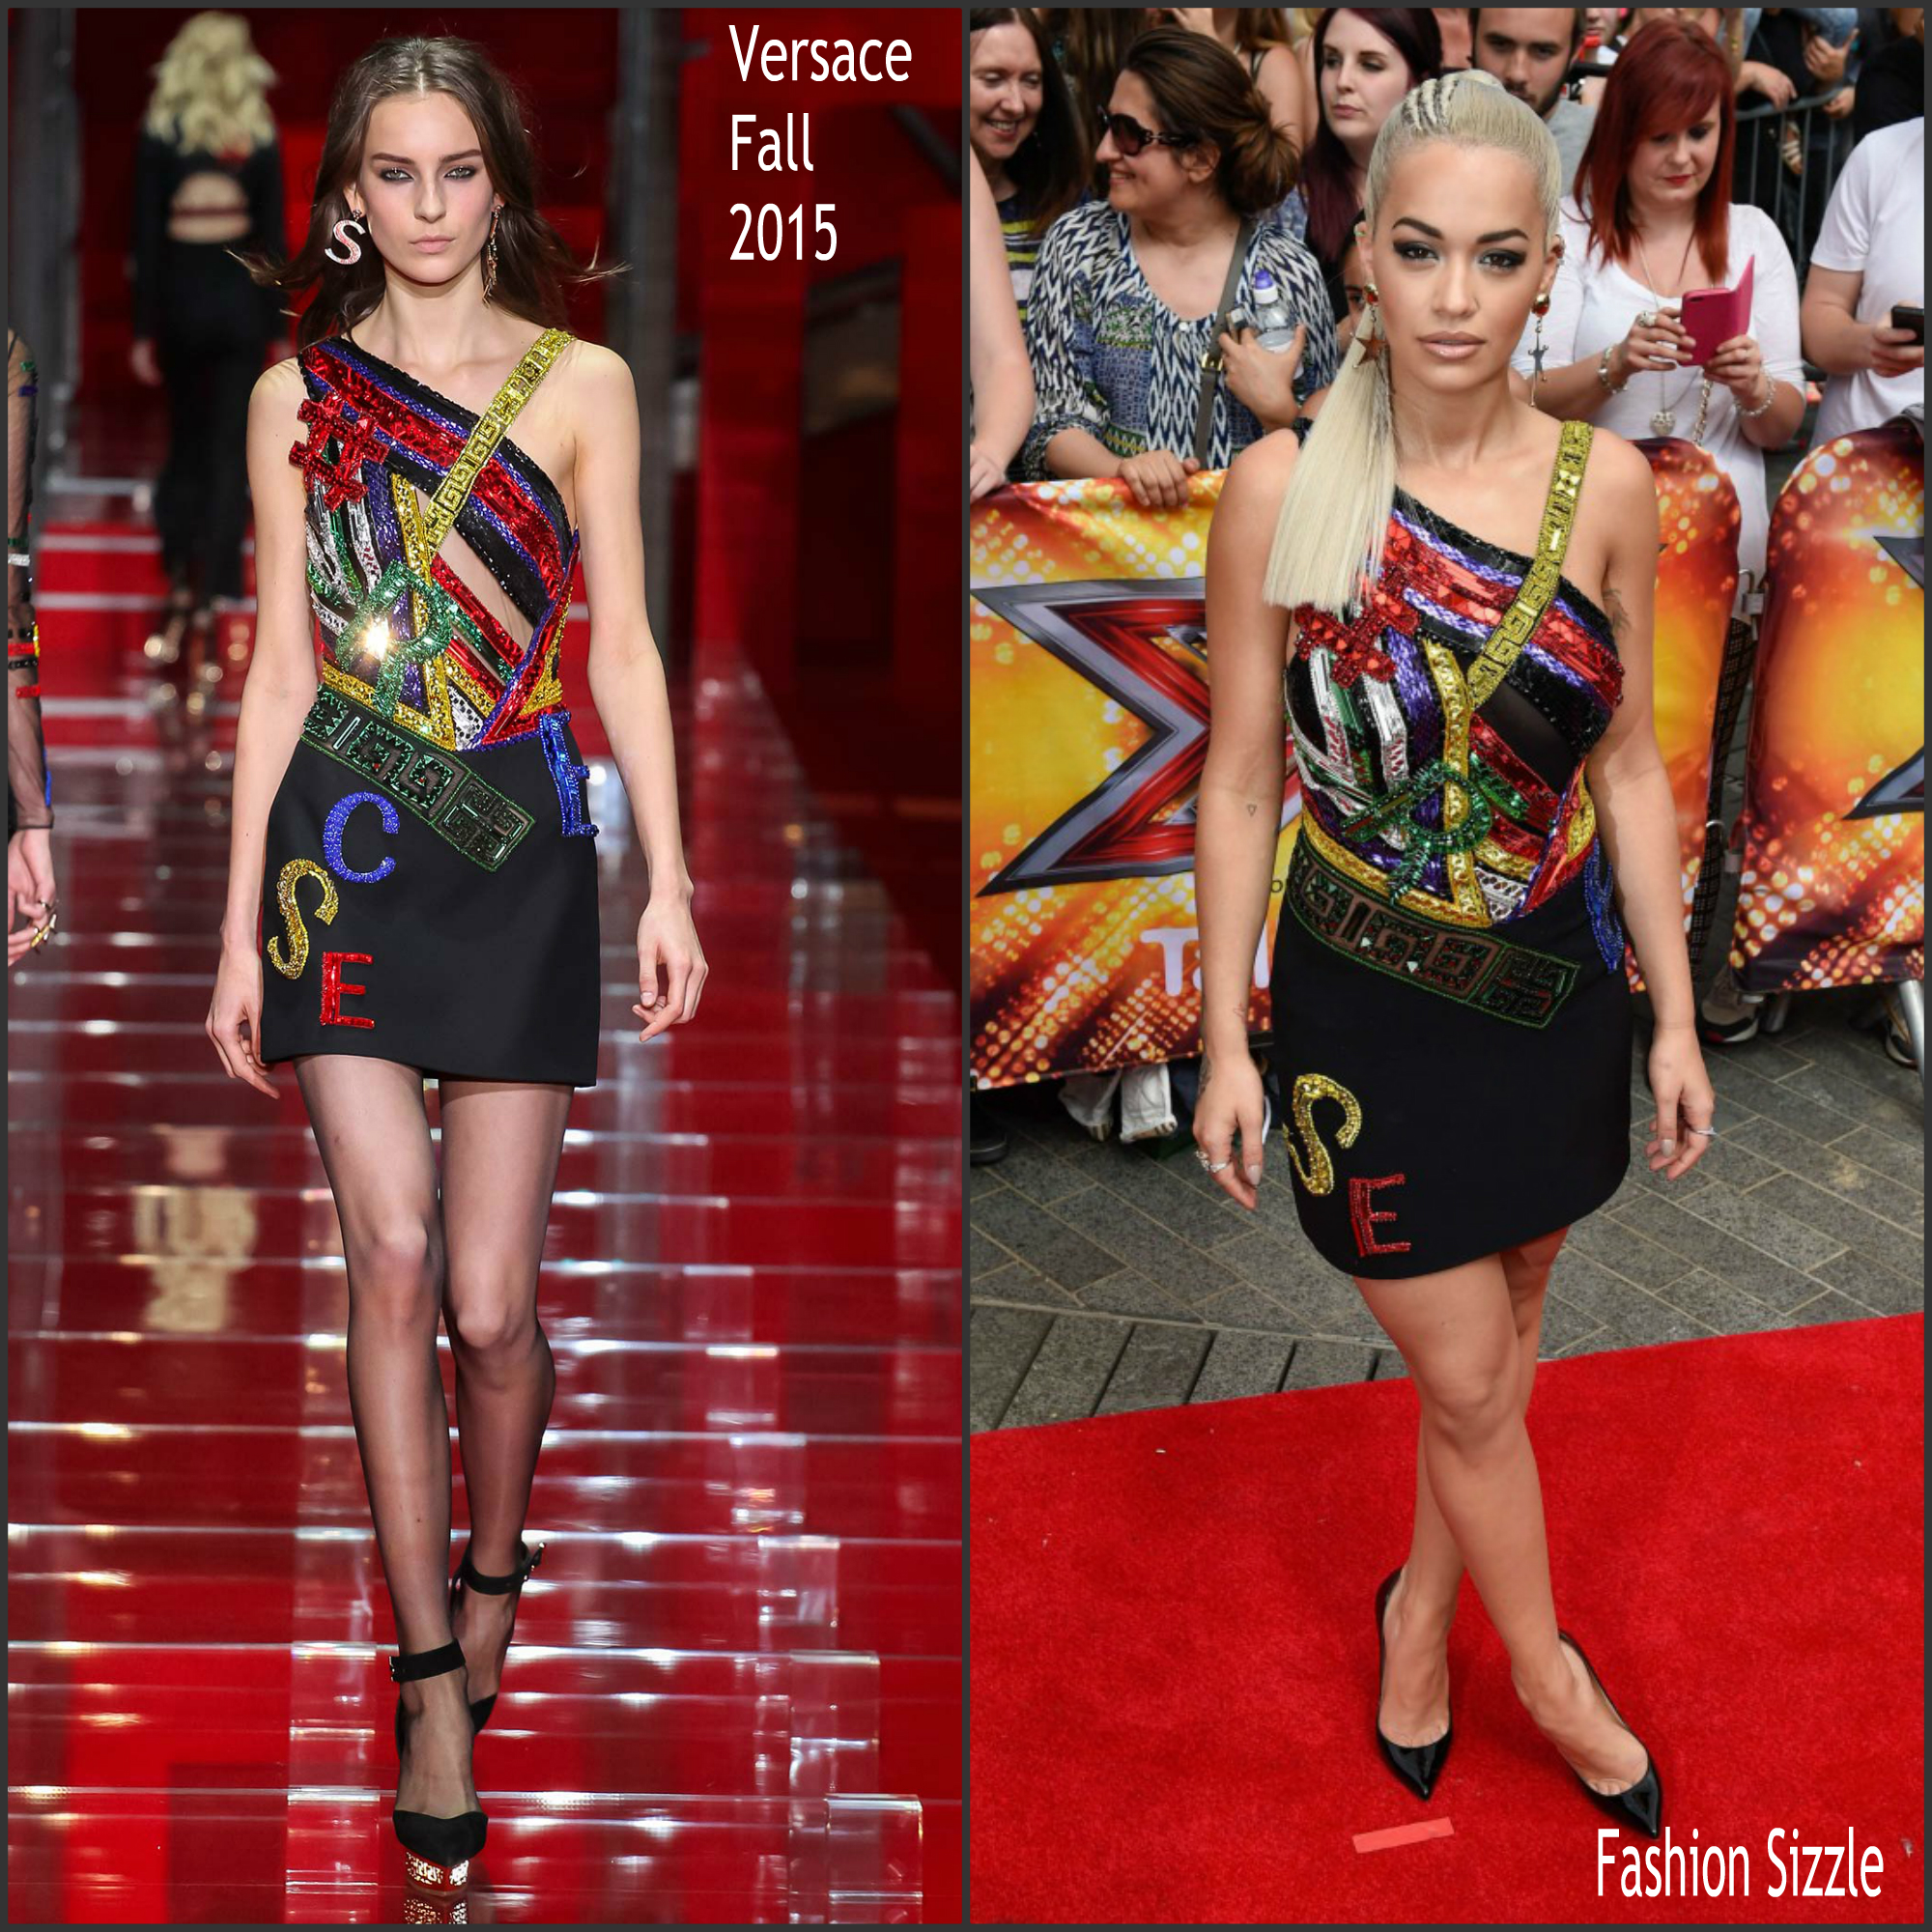 rita-ora-in-versace-at-x-factor-london-auditions